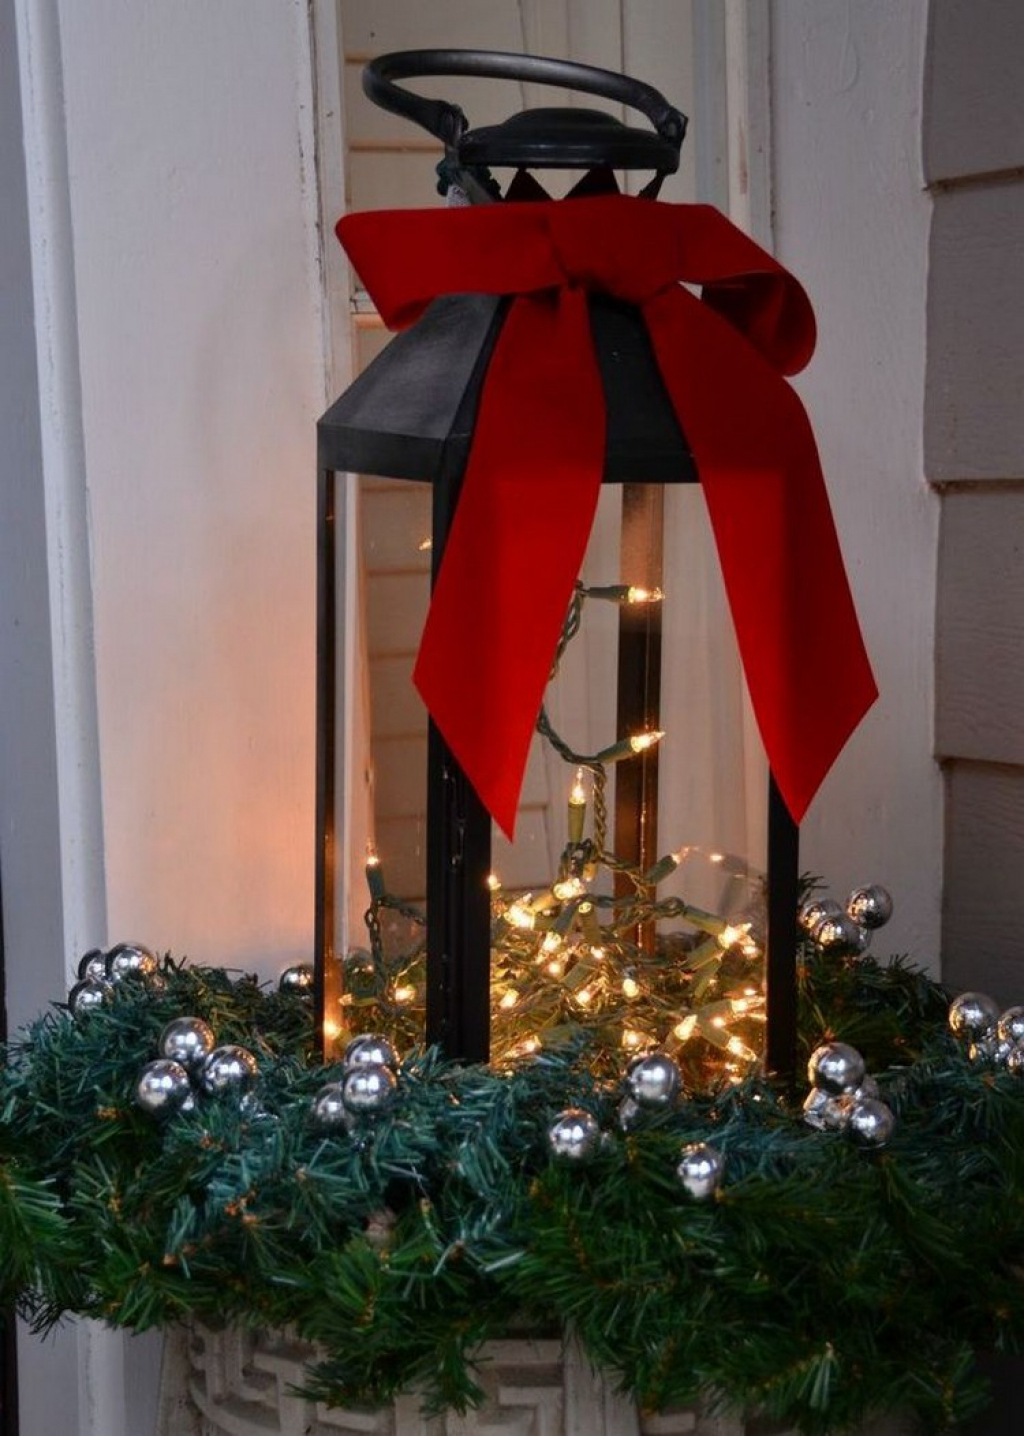 christmas lantern ideas - How To Decorate A Lantern For Christmas